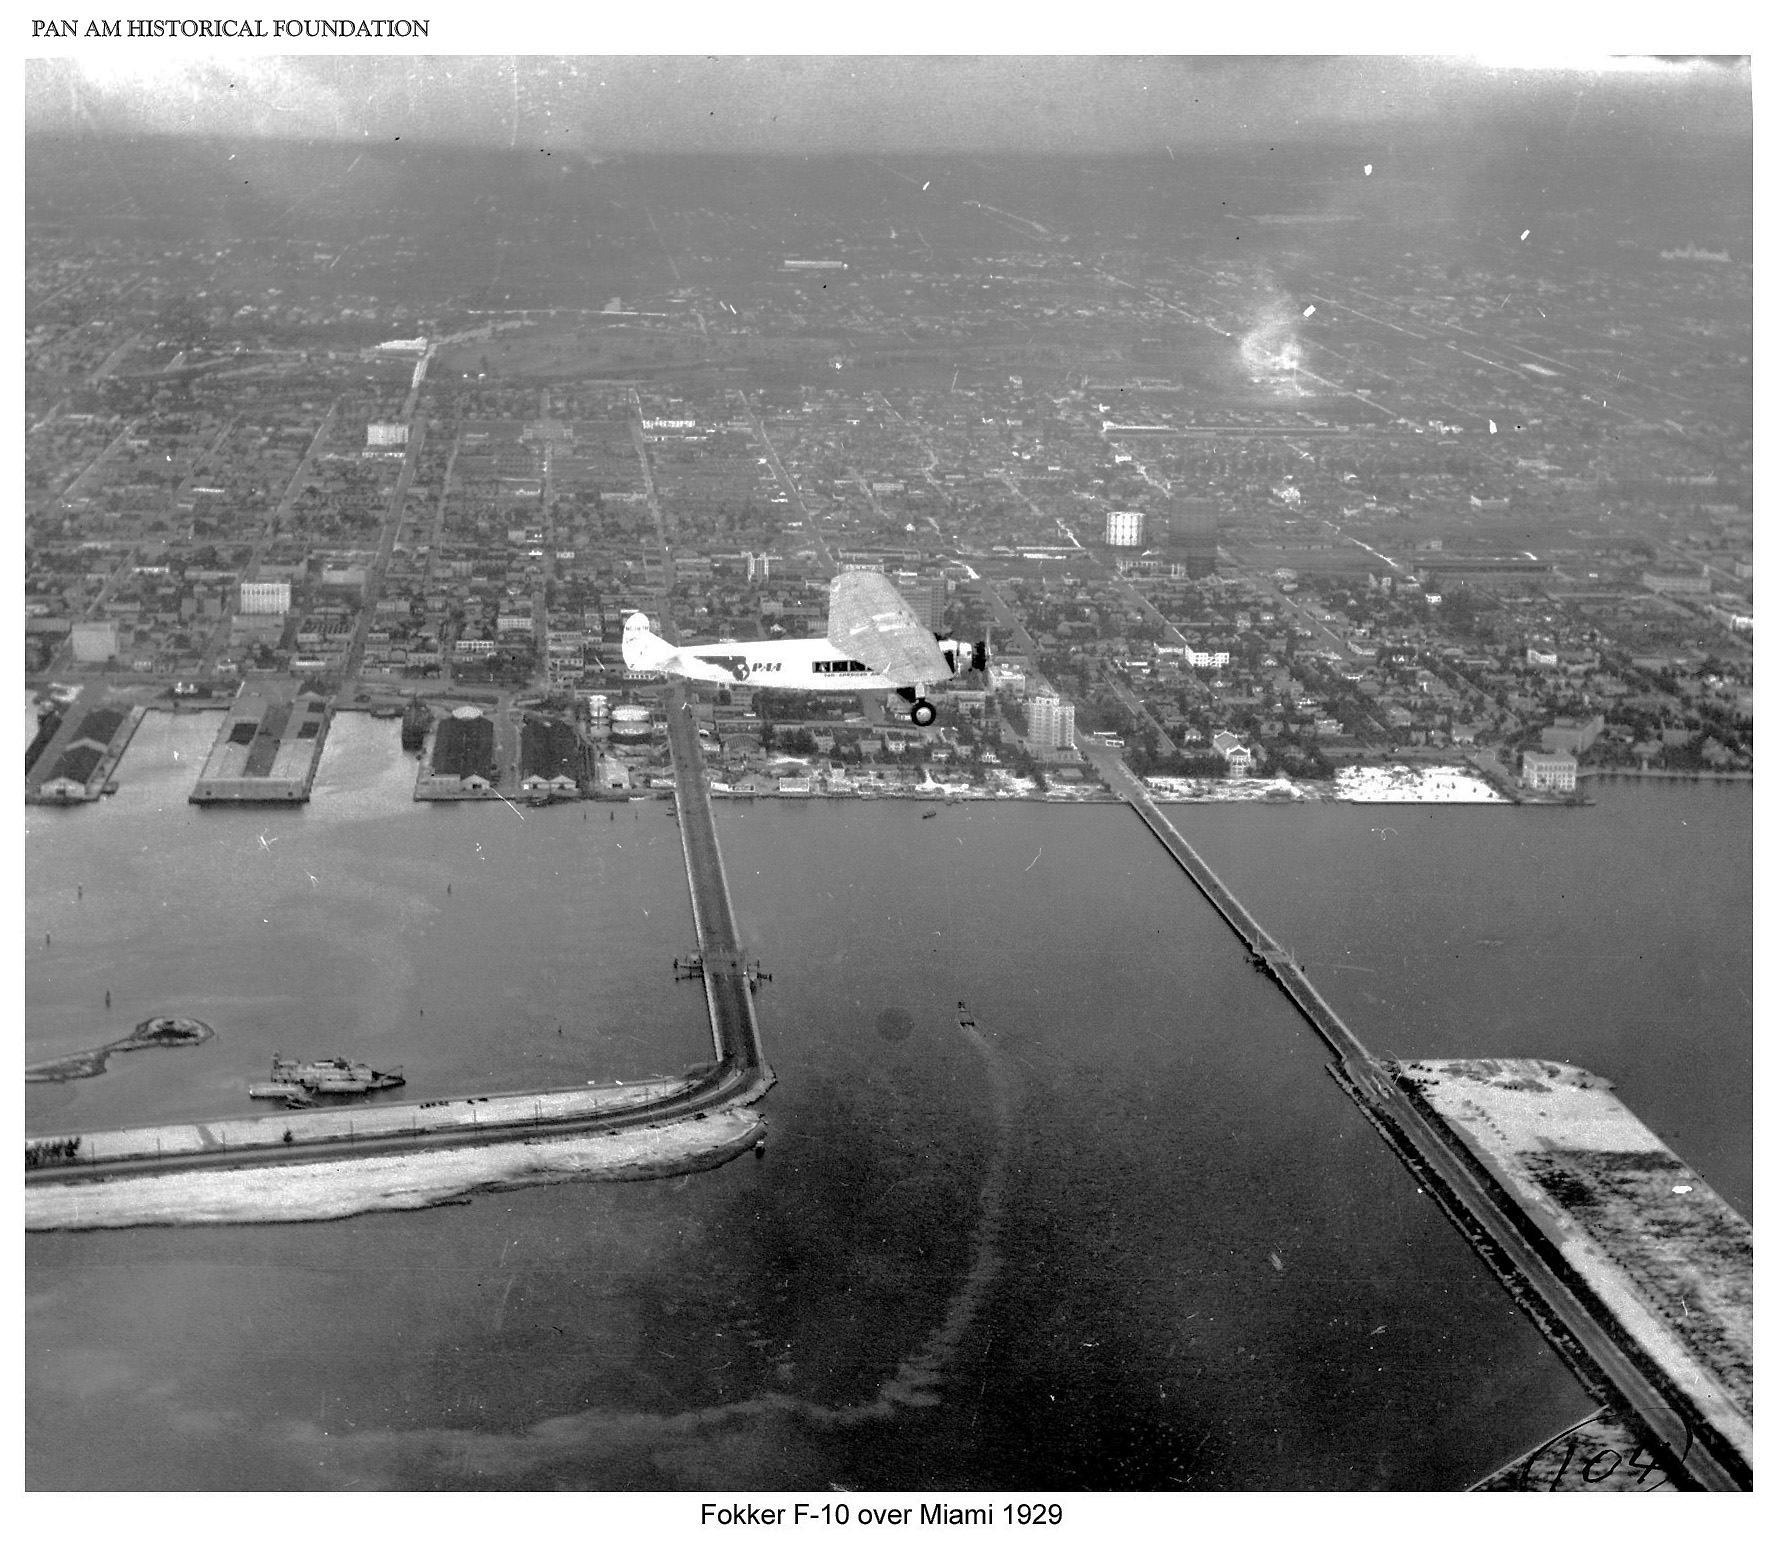 Fokker F10 over Miami 1929